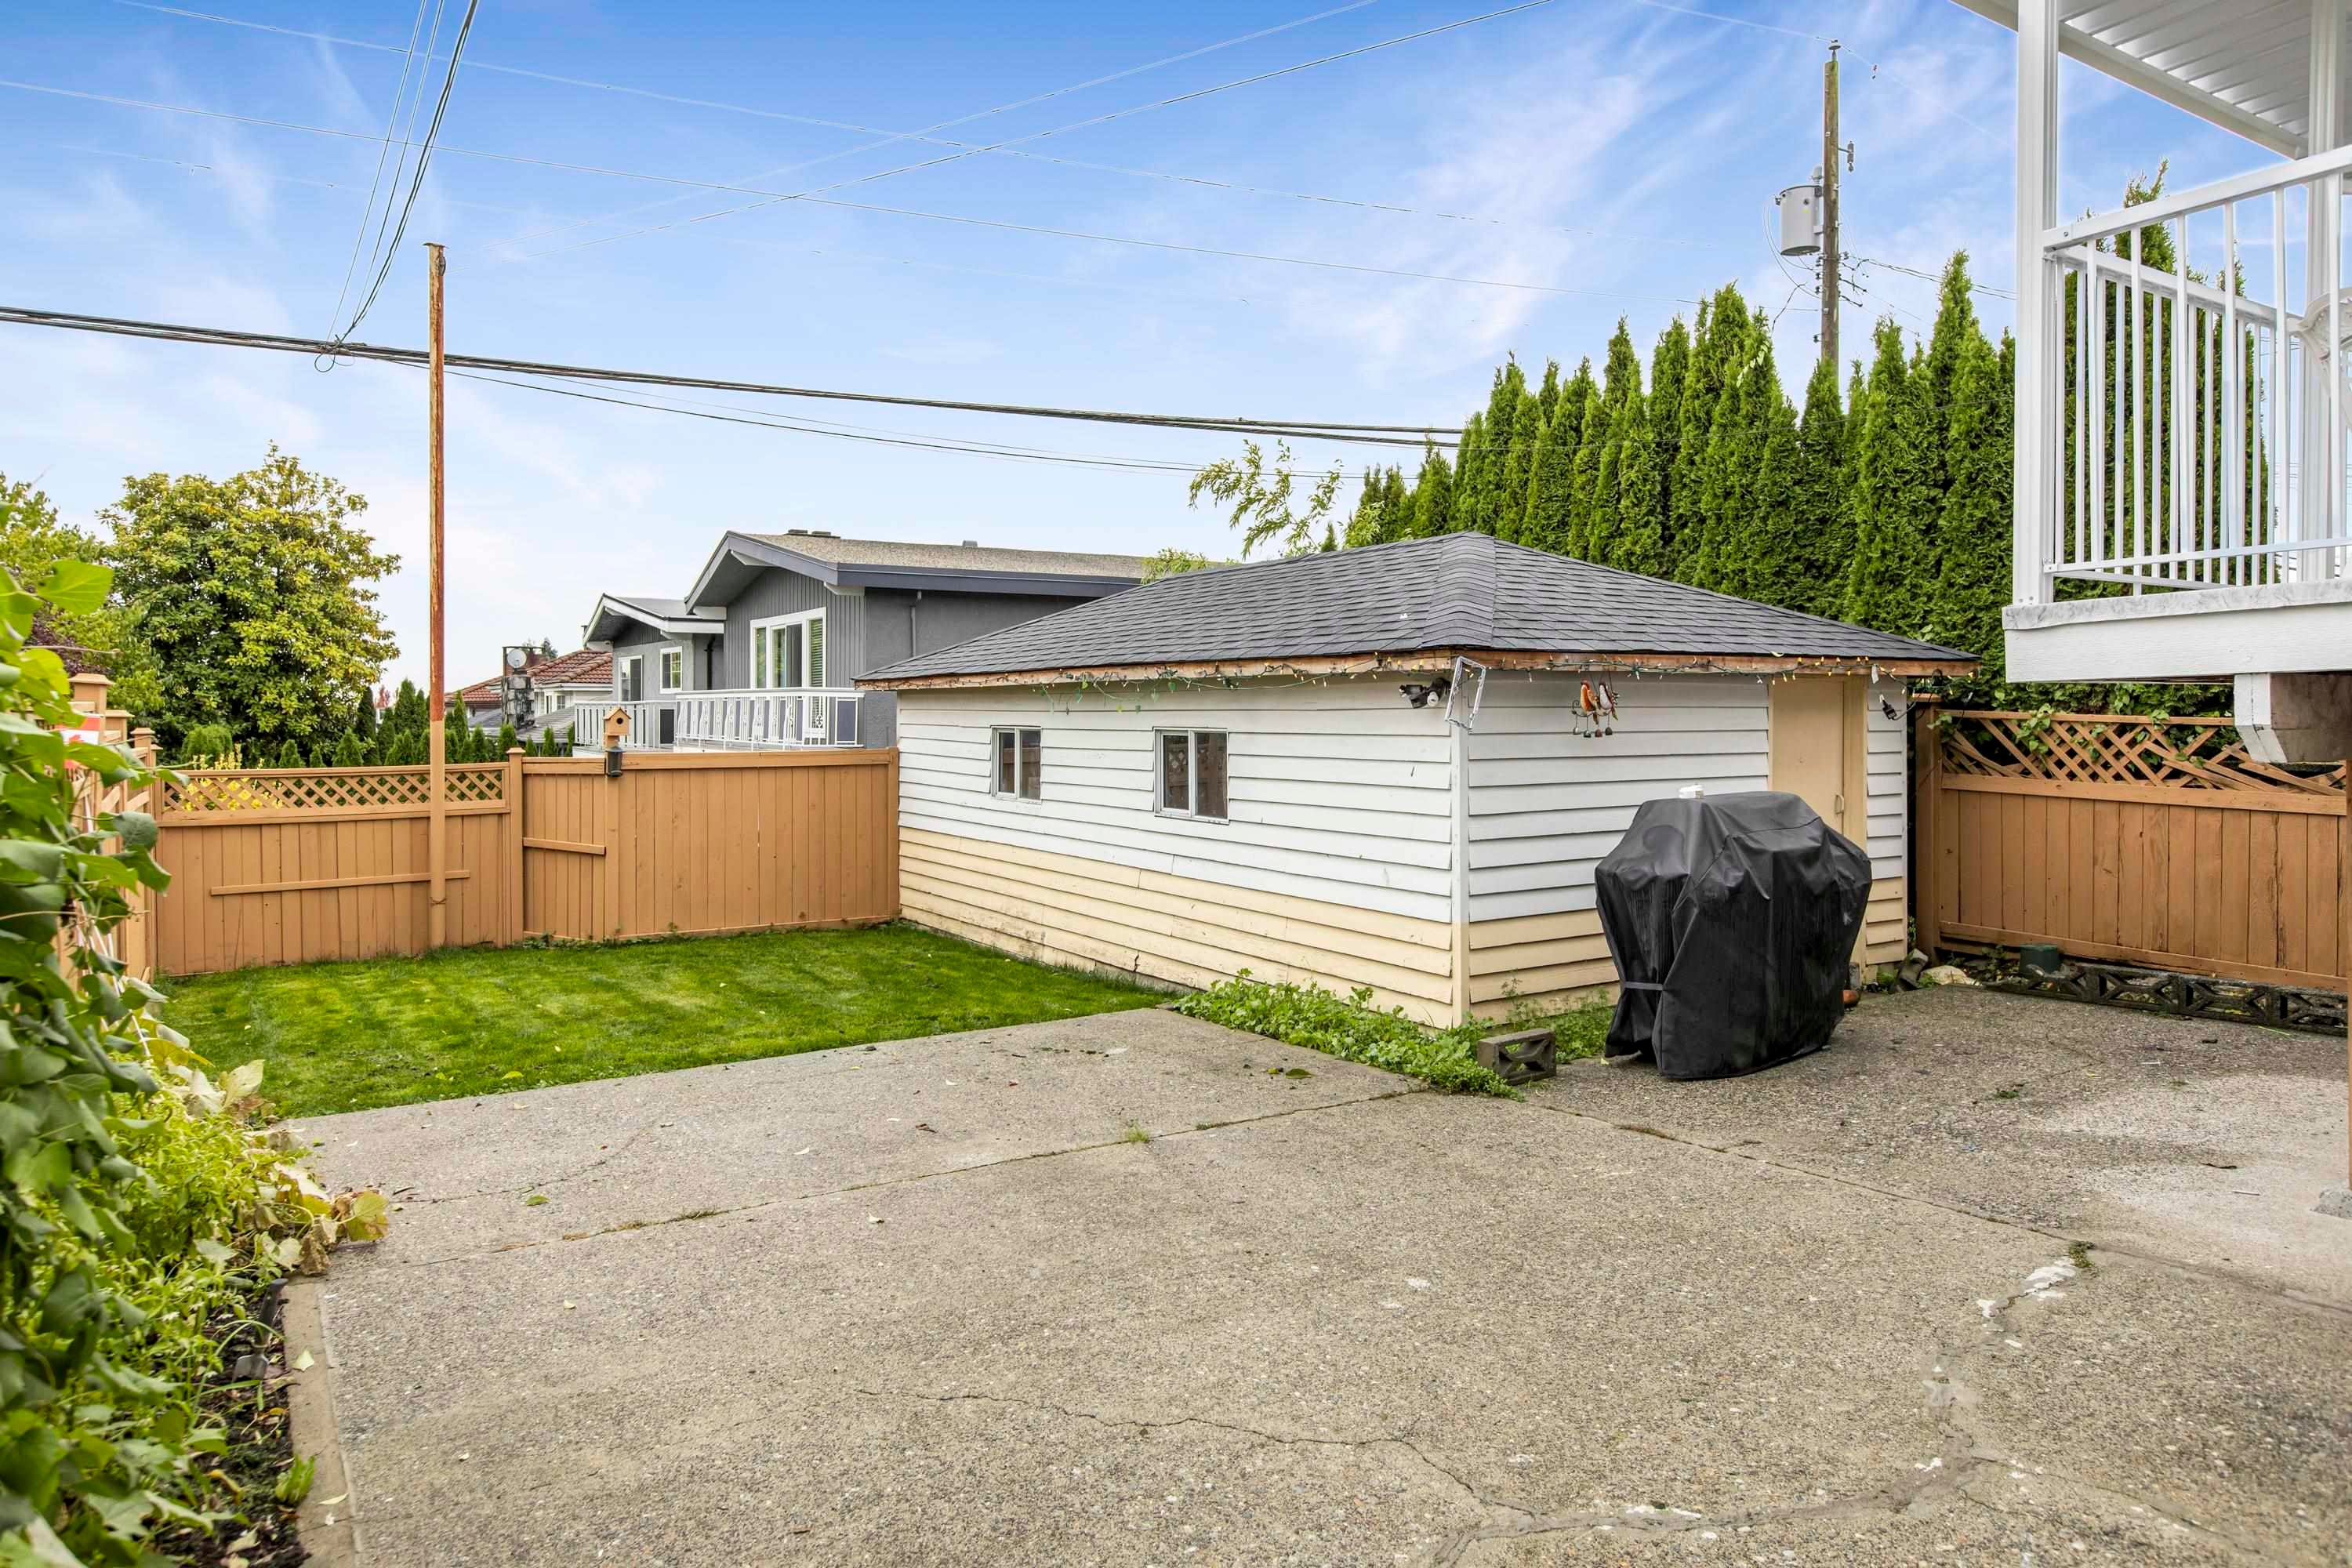 1352 E 57TH AVENUE - South Vancouver House/Single Family for sale, 4 Bedrooms (R2625705) - #4